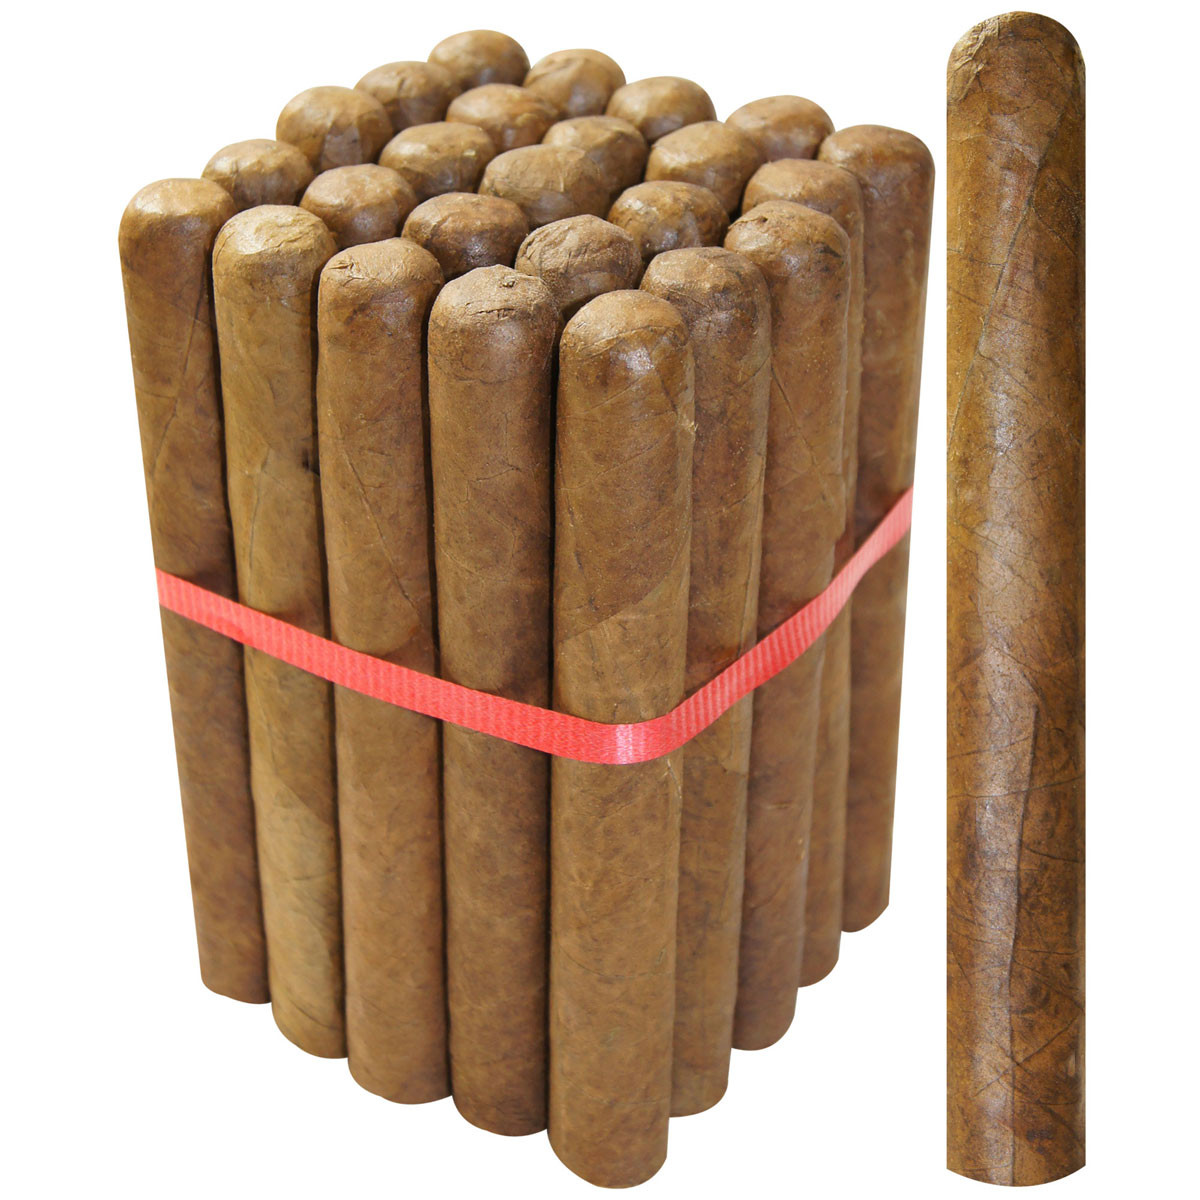 Chocolate Cigars - CUBAN CRAFTERS